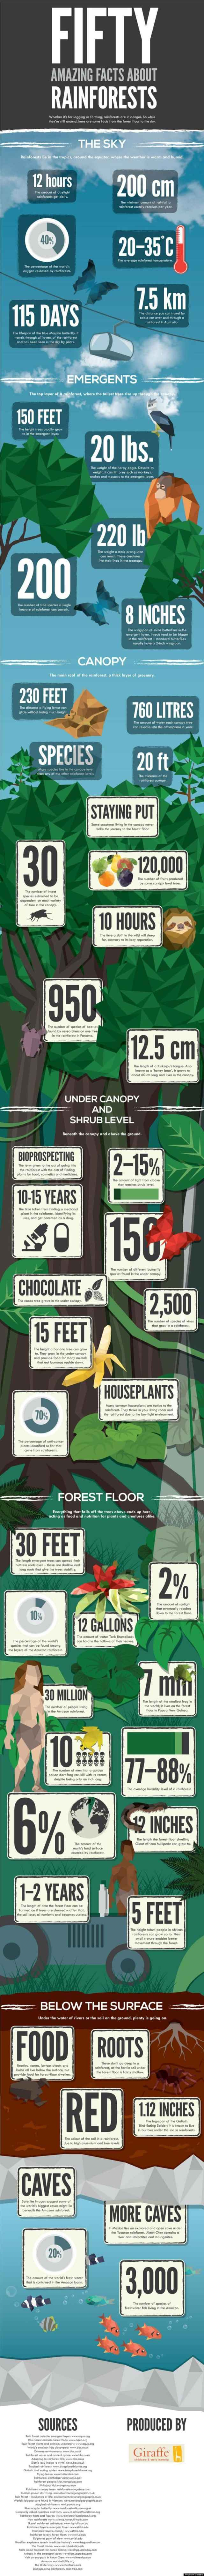 Amazing Facts About the Rainforest